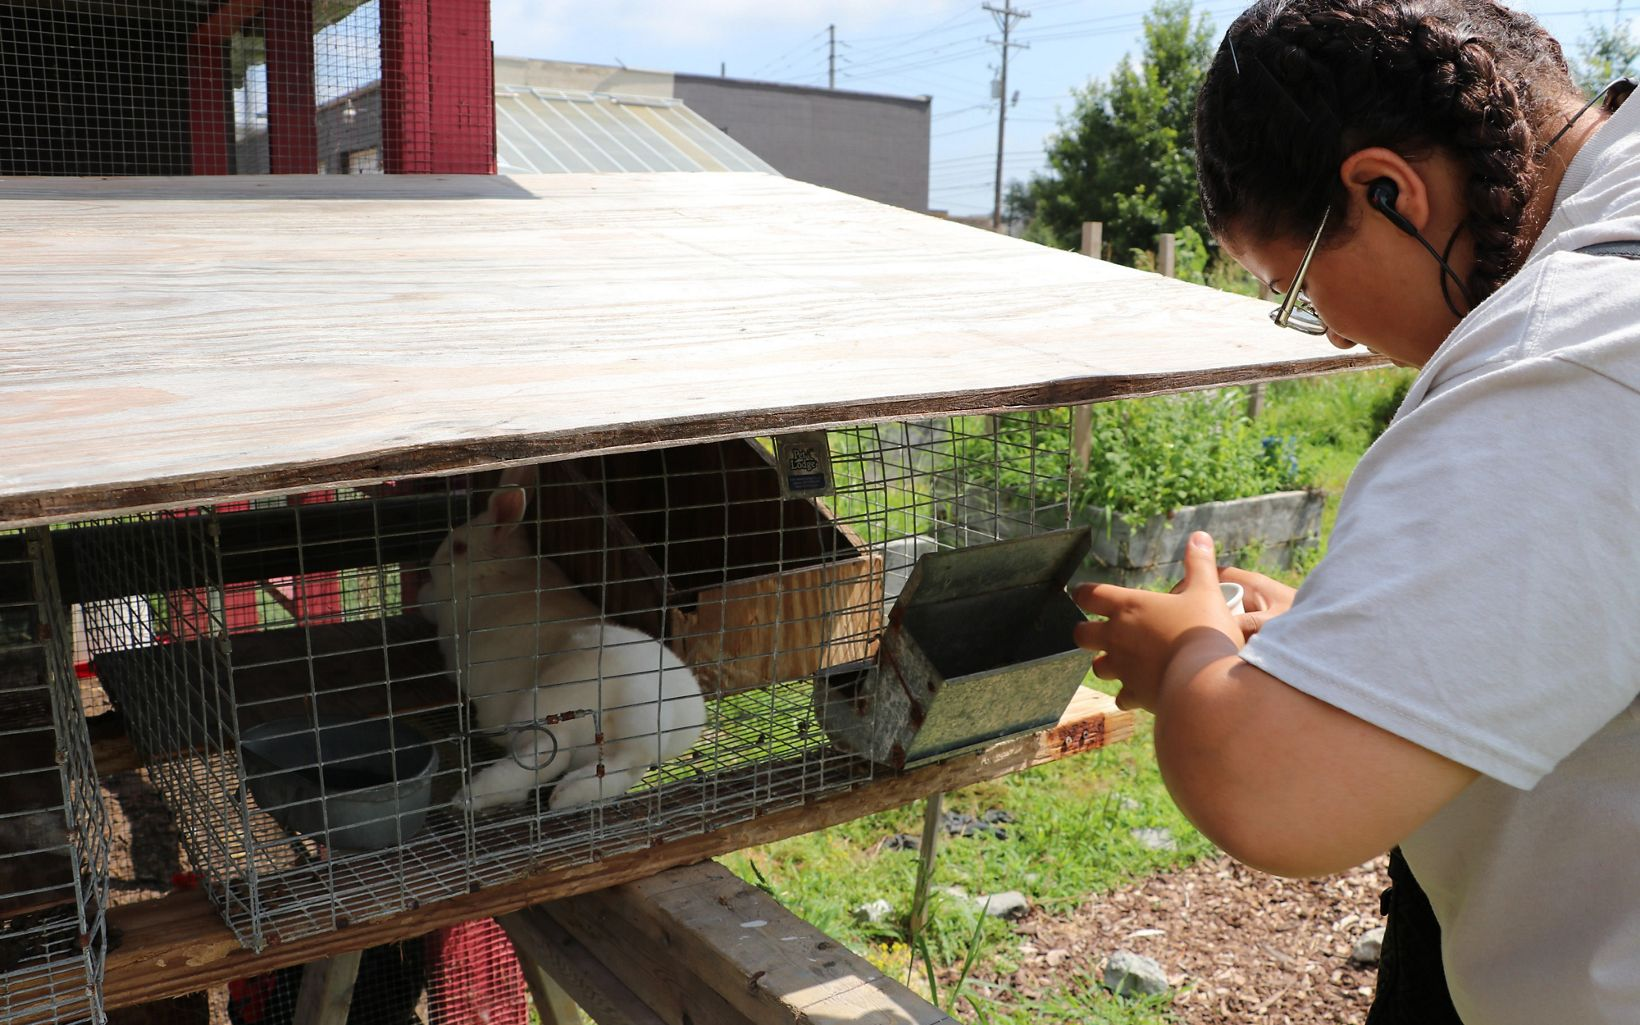 A young woman feeds a rabbit.